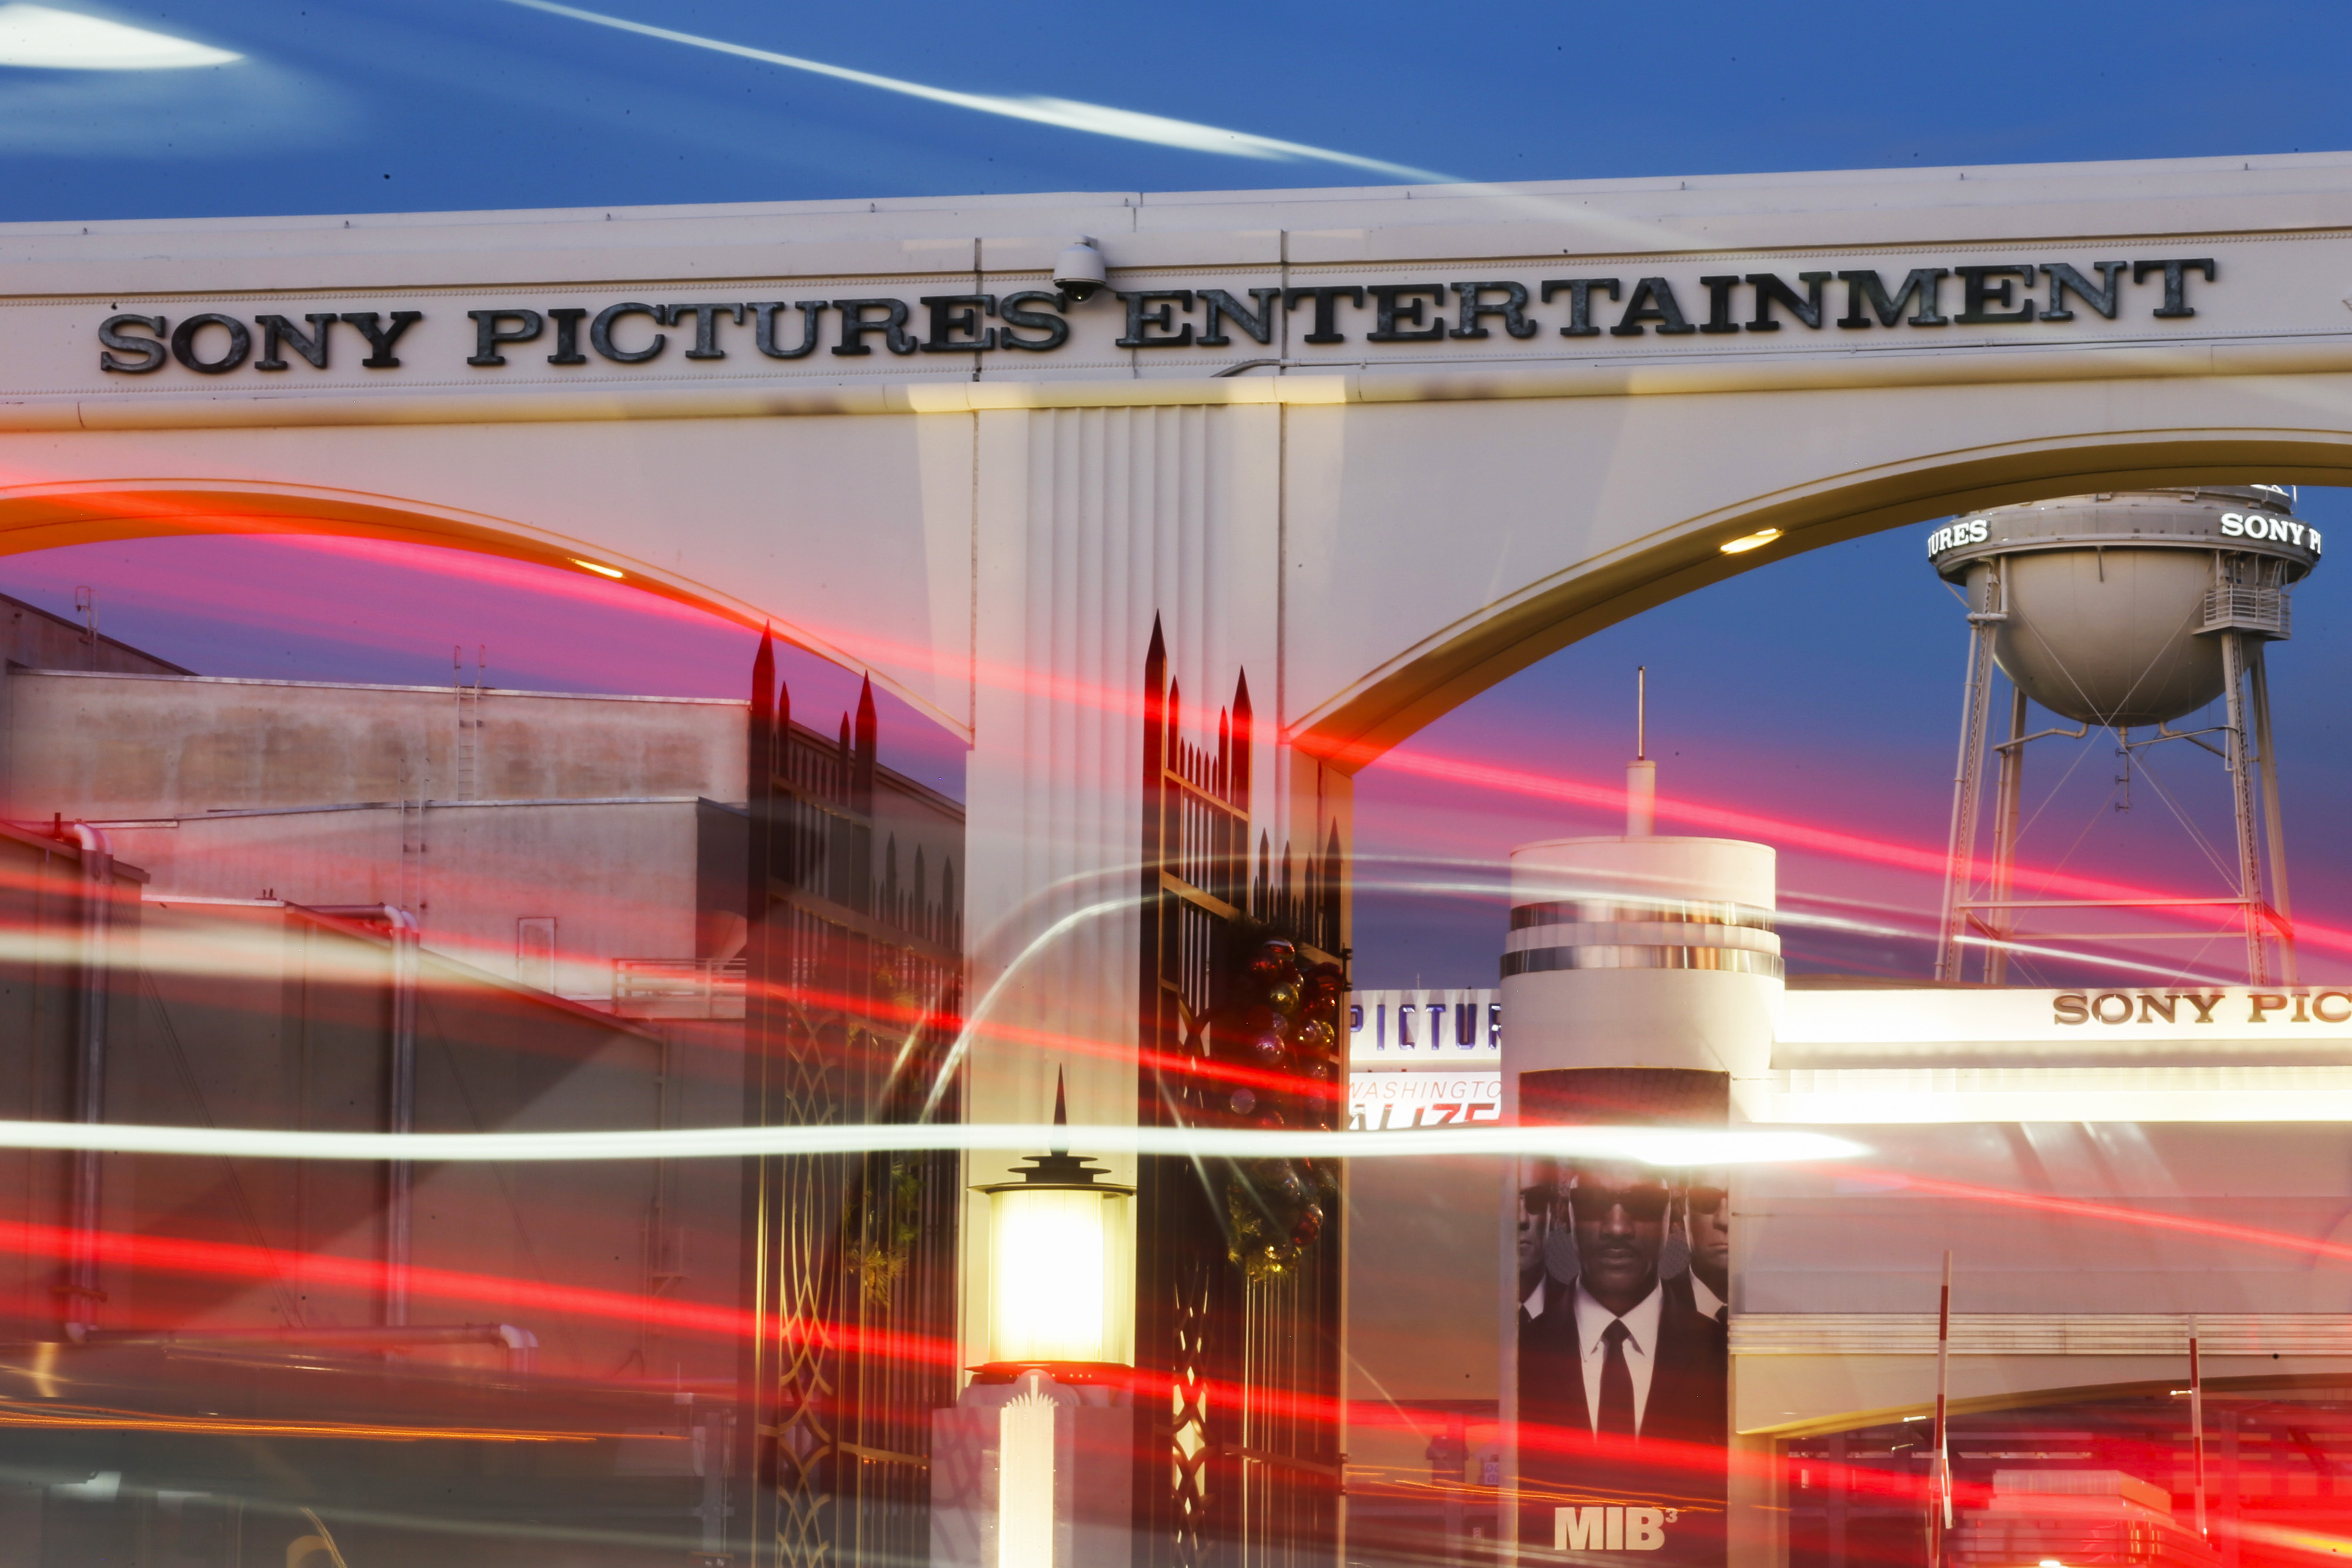 Sony Pictures Entertainment Inc. Studios As Cyber Attack Repercussions Continue